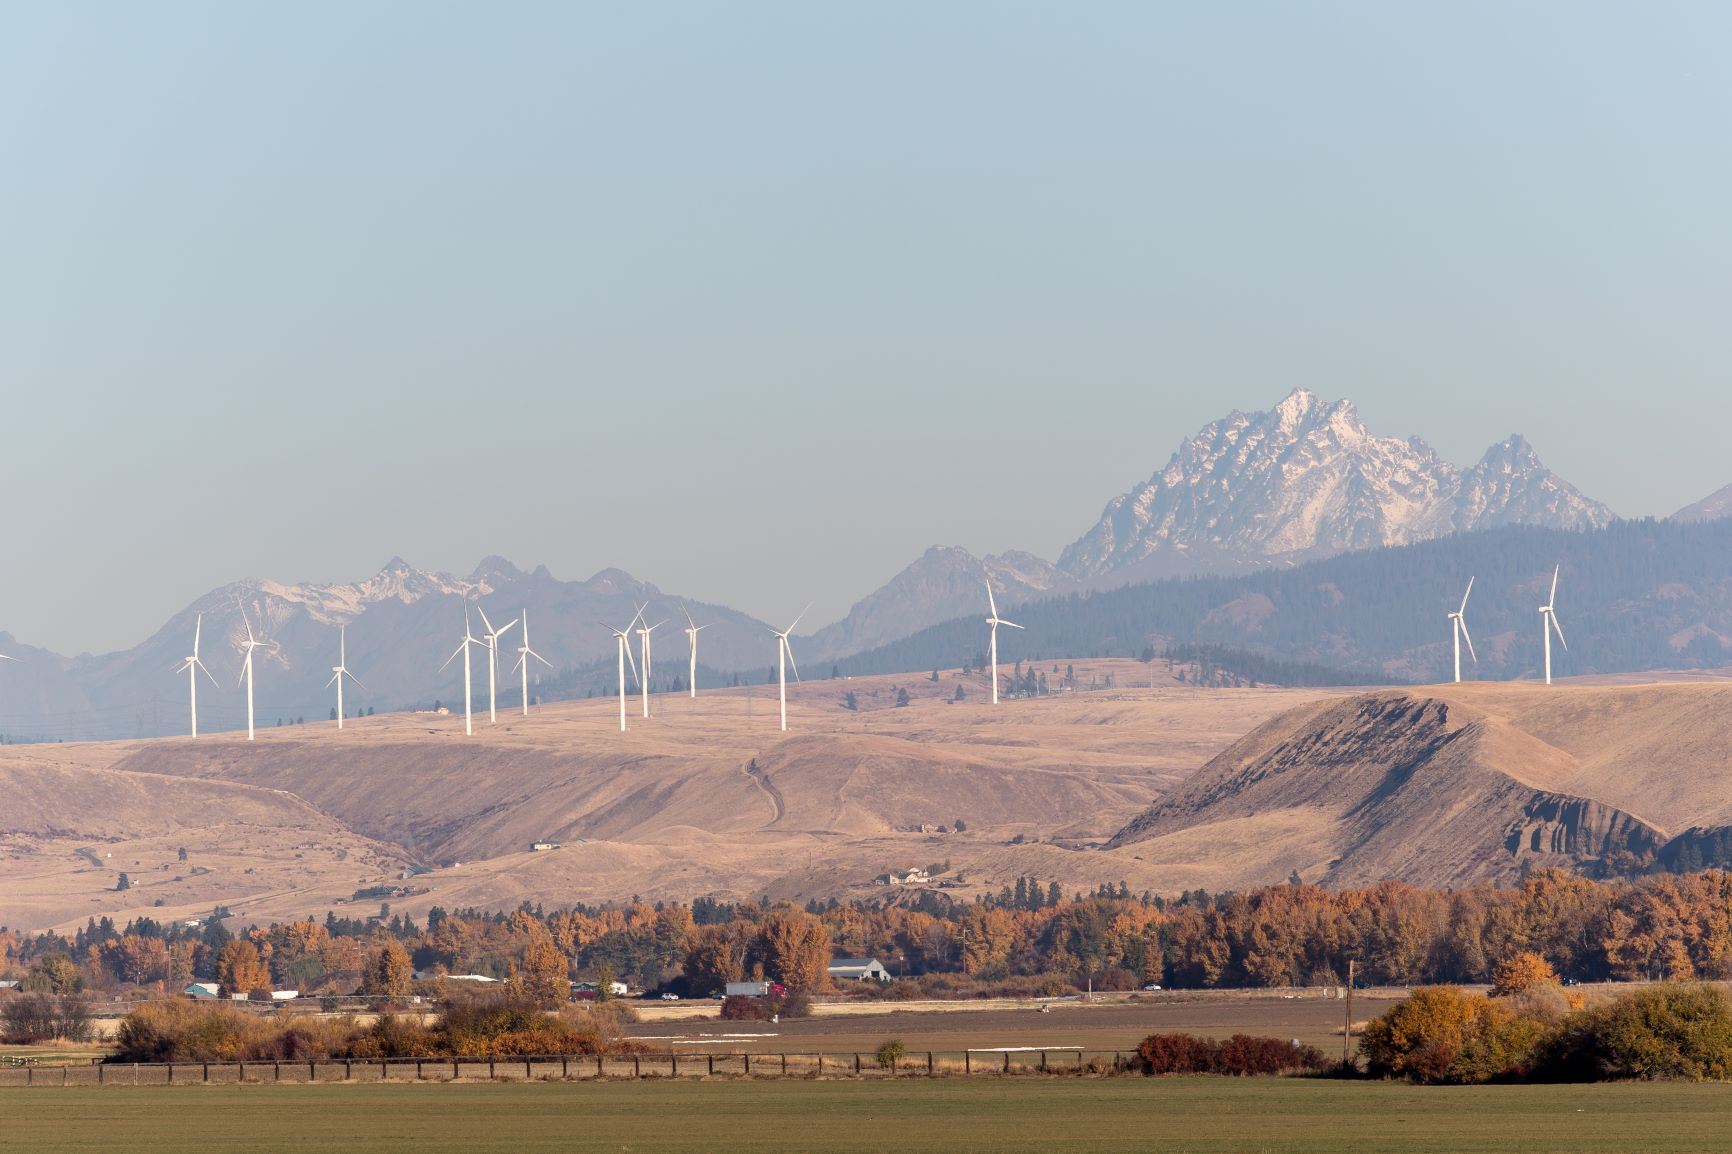 View of Mt. Stuart from Ellensburg, in the foreground are farms and windmills